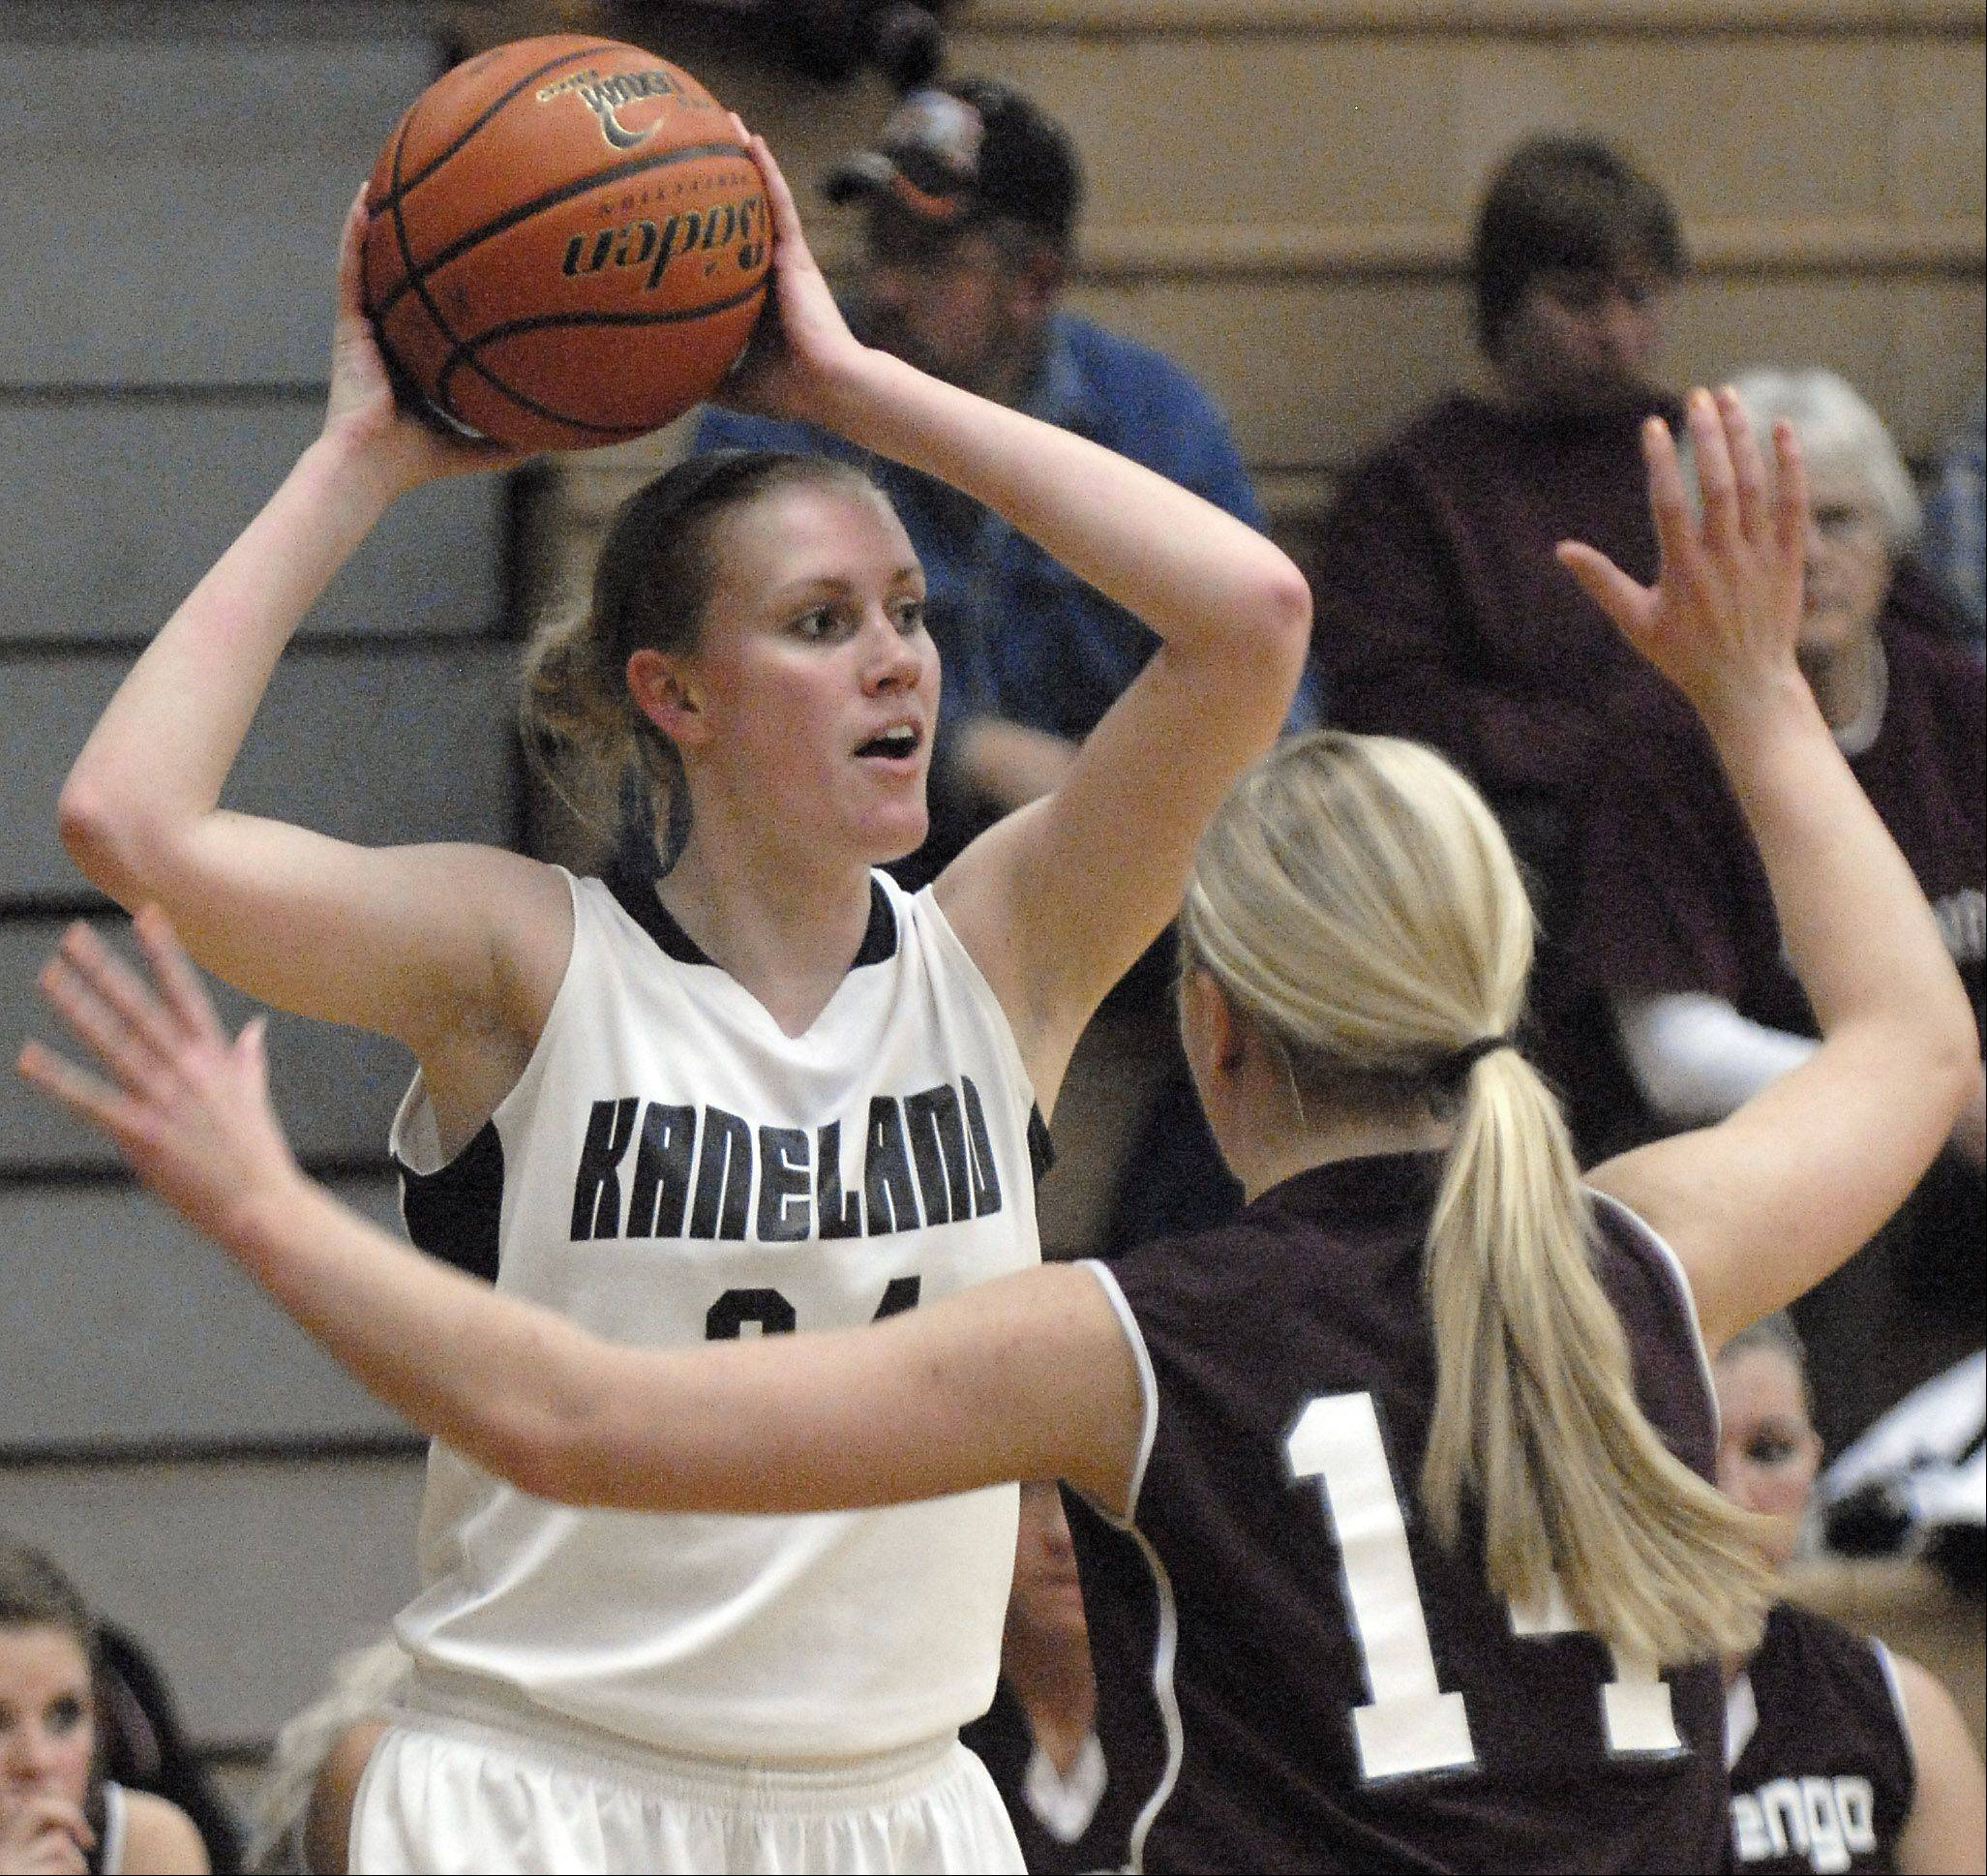 Kaneland's Kelly Evers looks to pass over Marengo's Allison Rogutich in the first quarter on Tuesday, February 7.